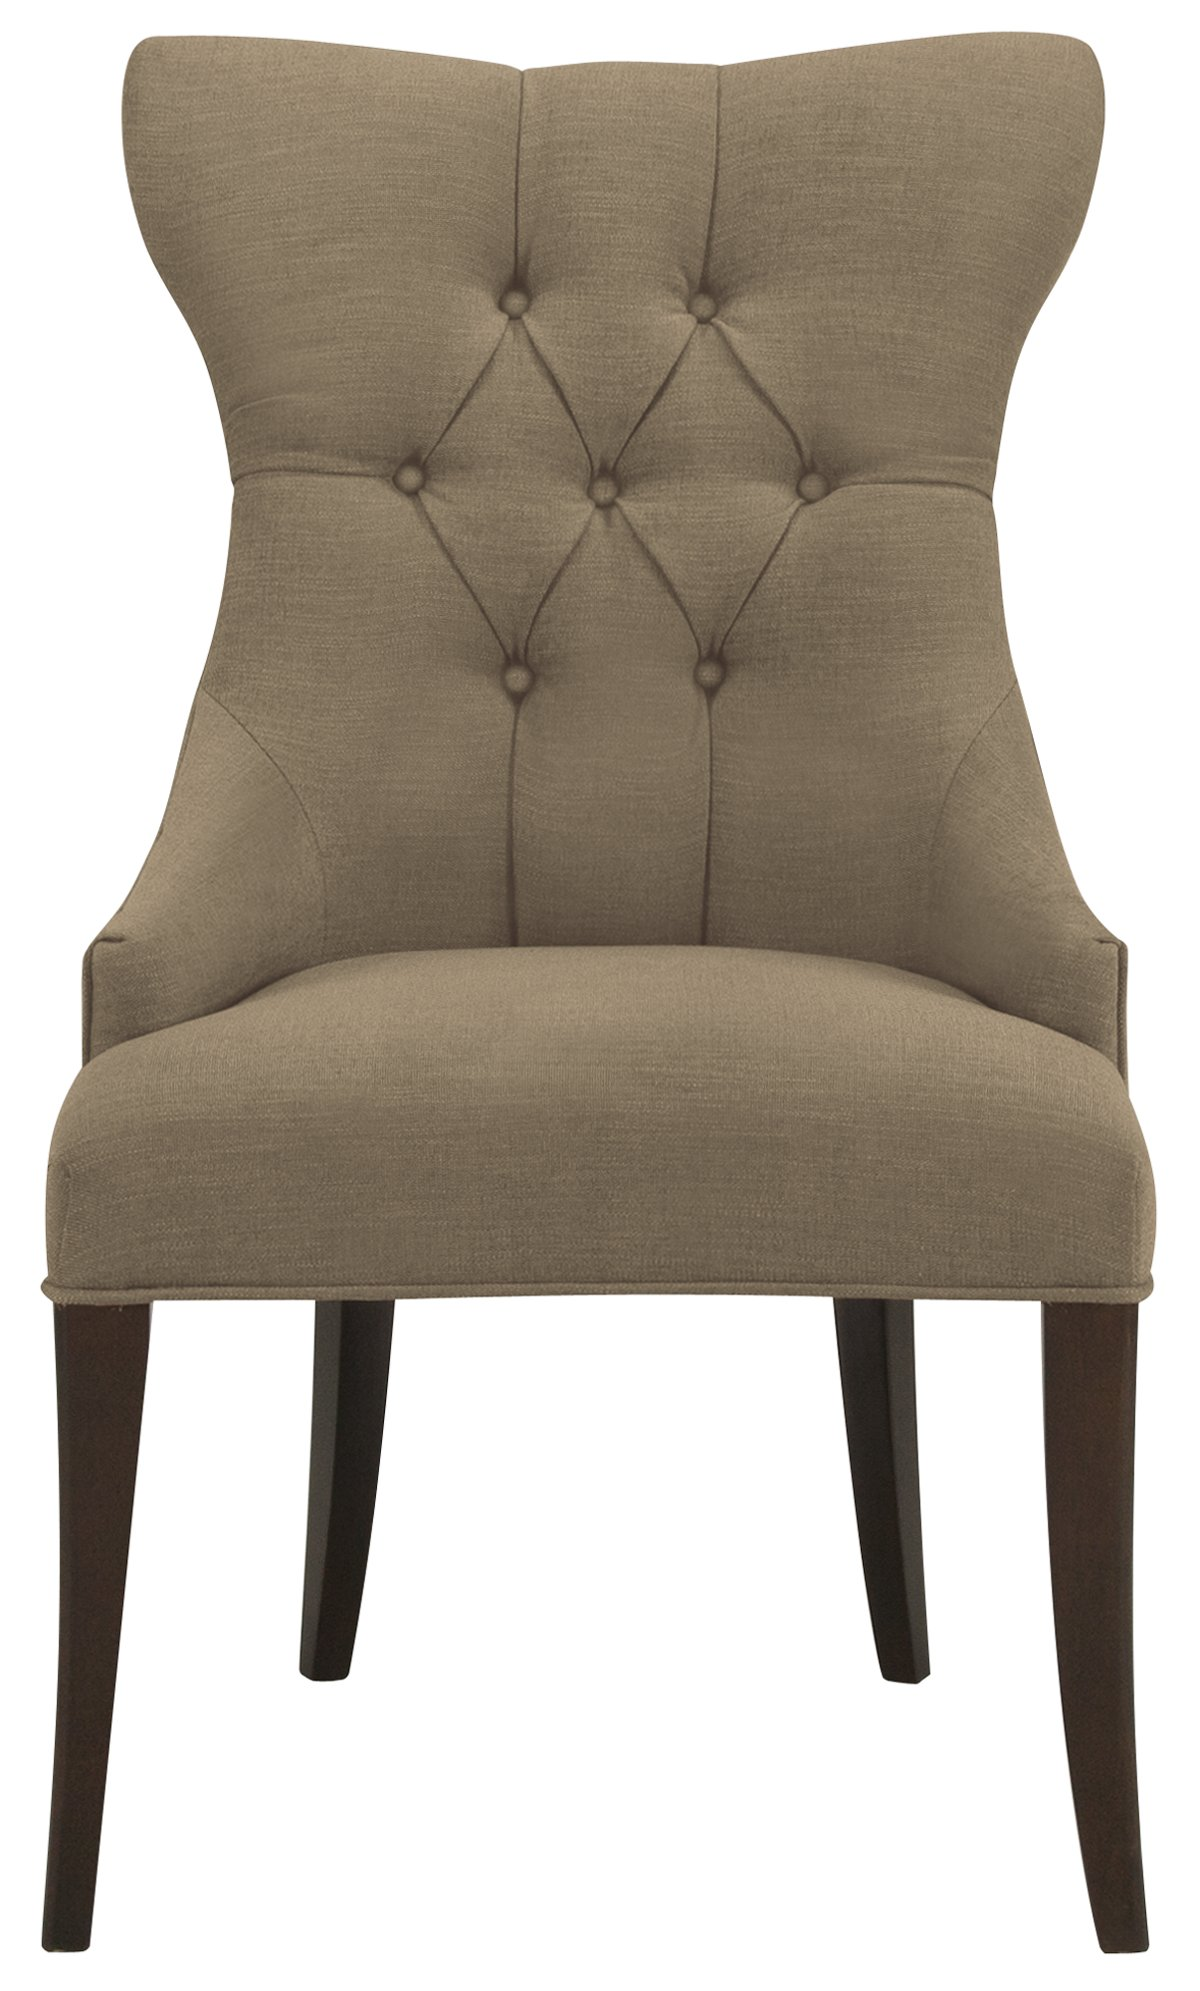 Deco Khaki Upholstered Side Chair